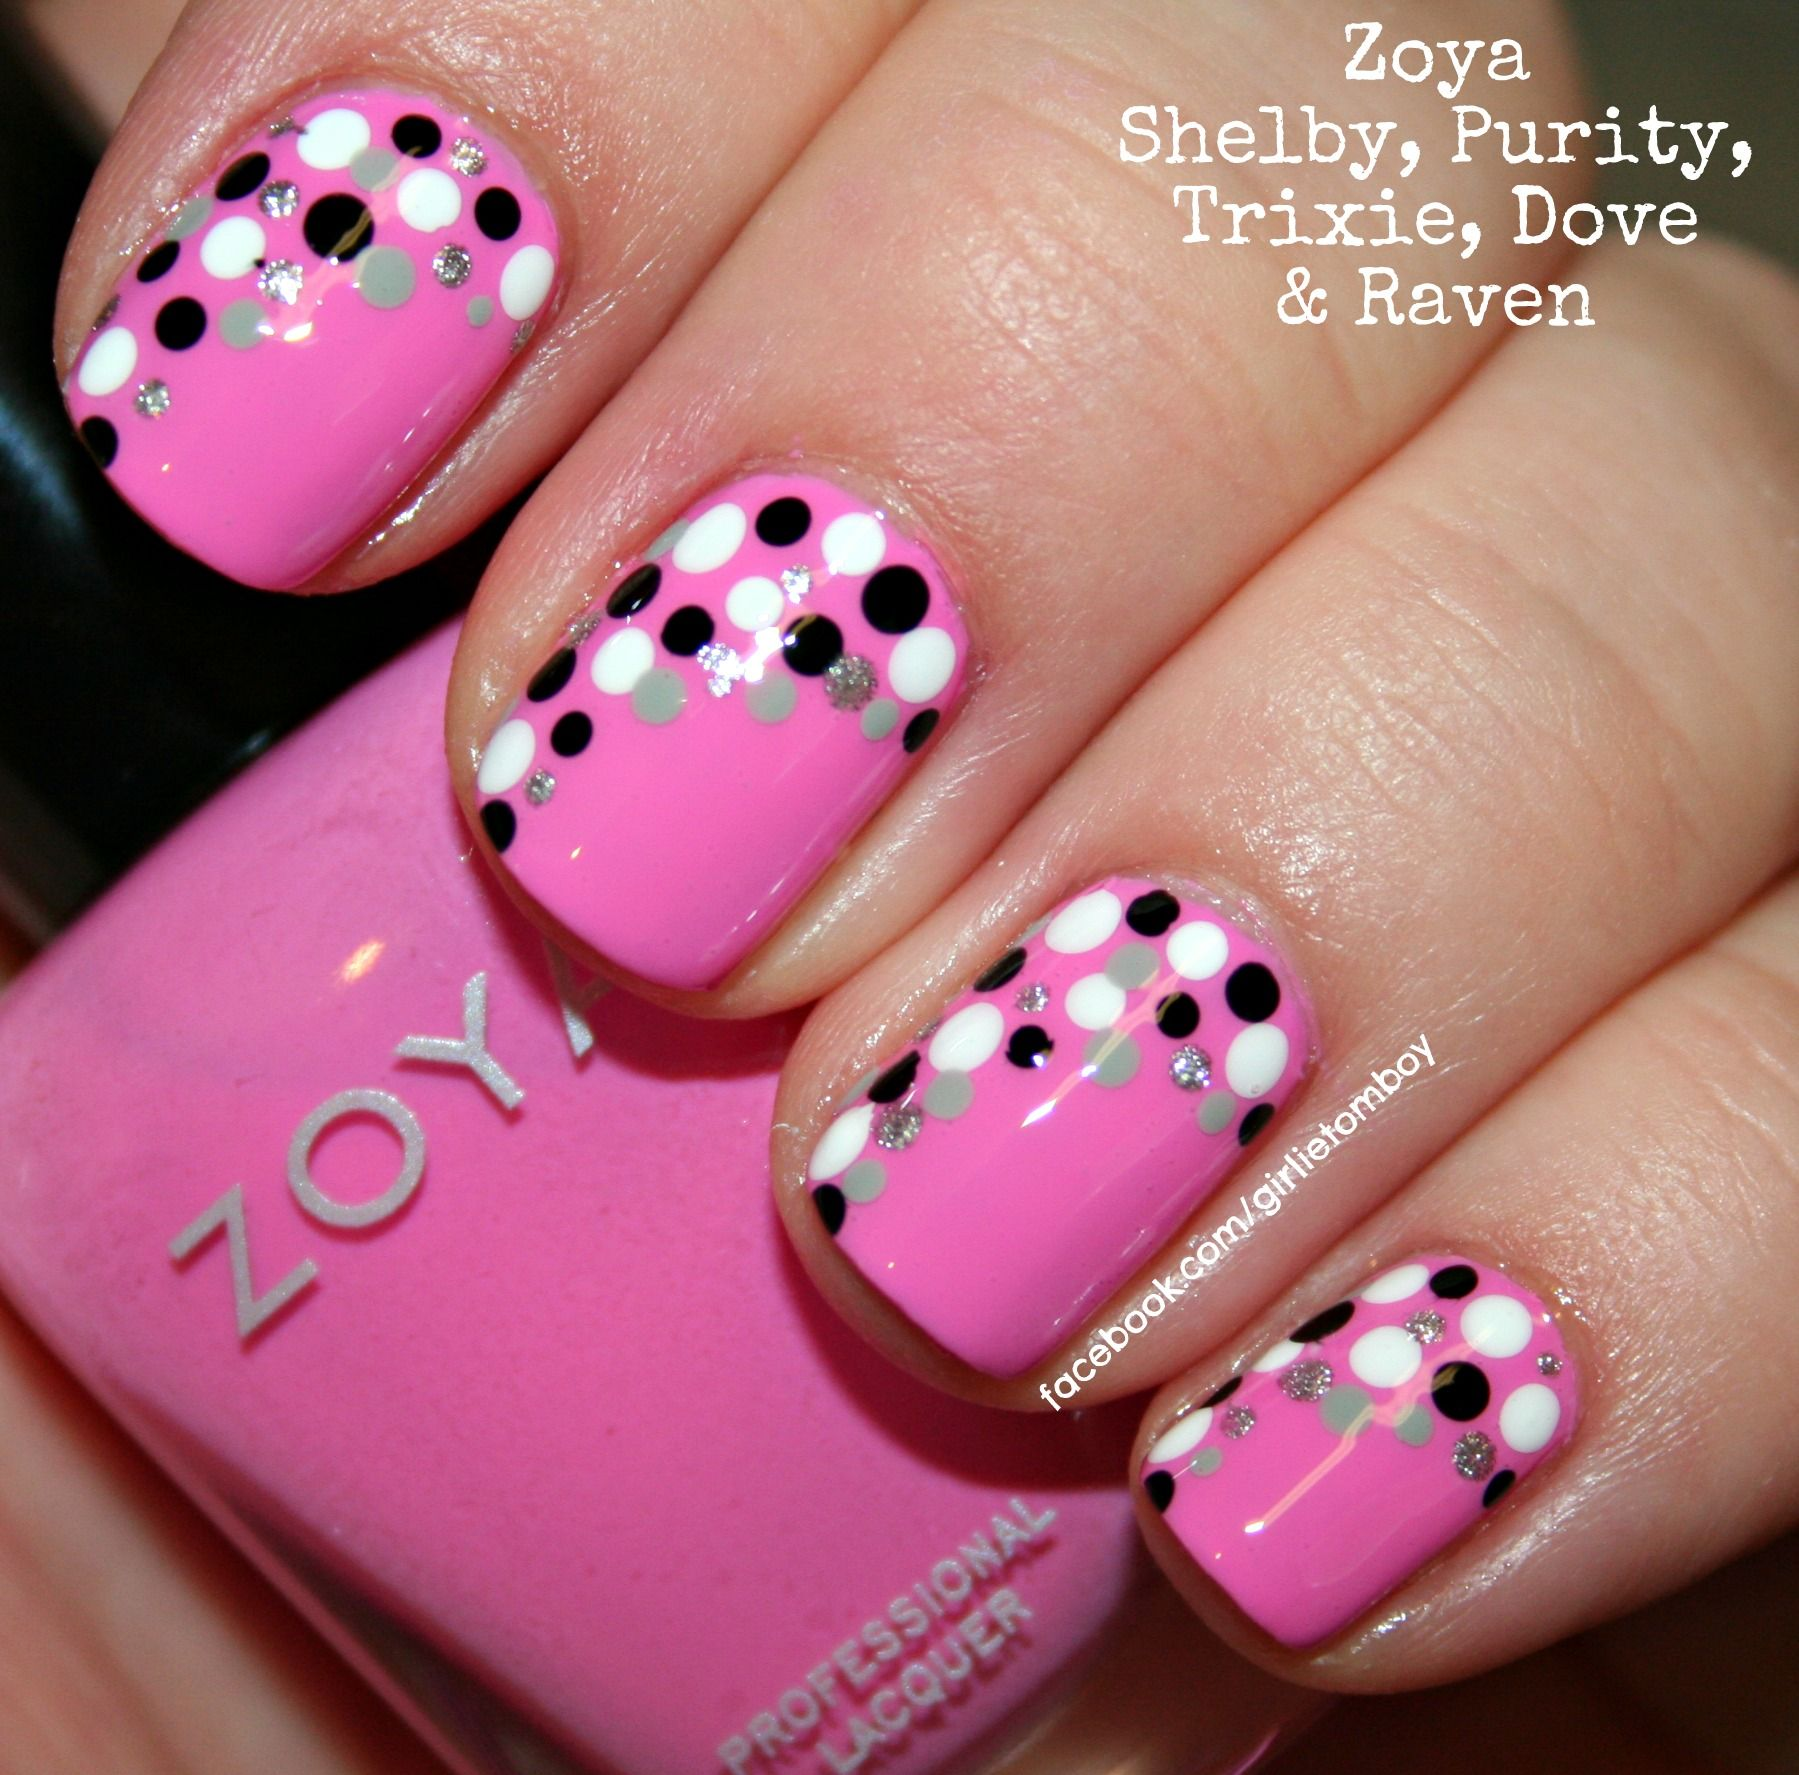 Pink nails with silver grey black and white dots nail art design pink nails with silver grey black and white dots nail art design prinsesfo Image collections